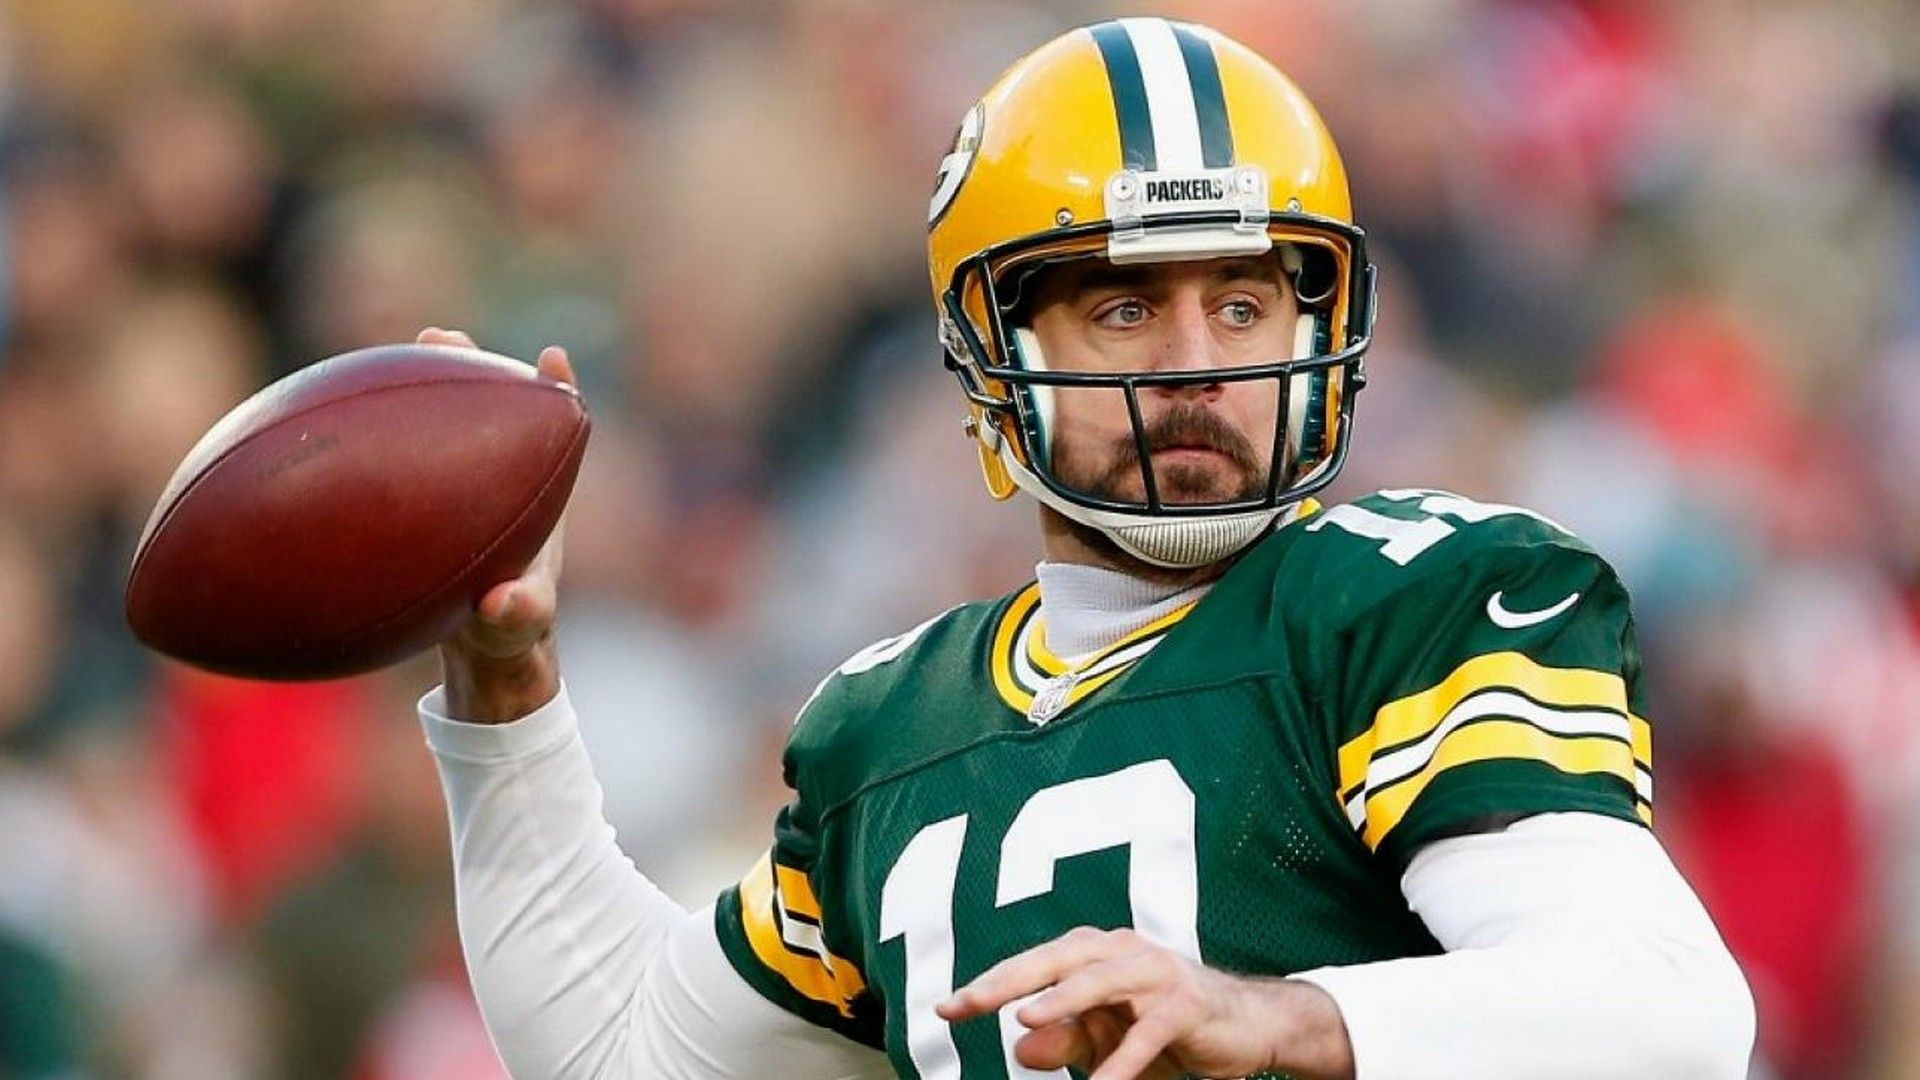 Backgrounds Aaron Rodgers Hd 2020 Nfl Football Wallpapers Nfl Football Wallpaper Aaron Rodgers Nfl Football